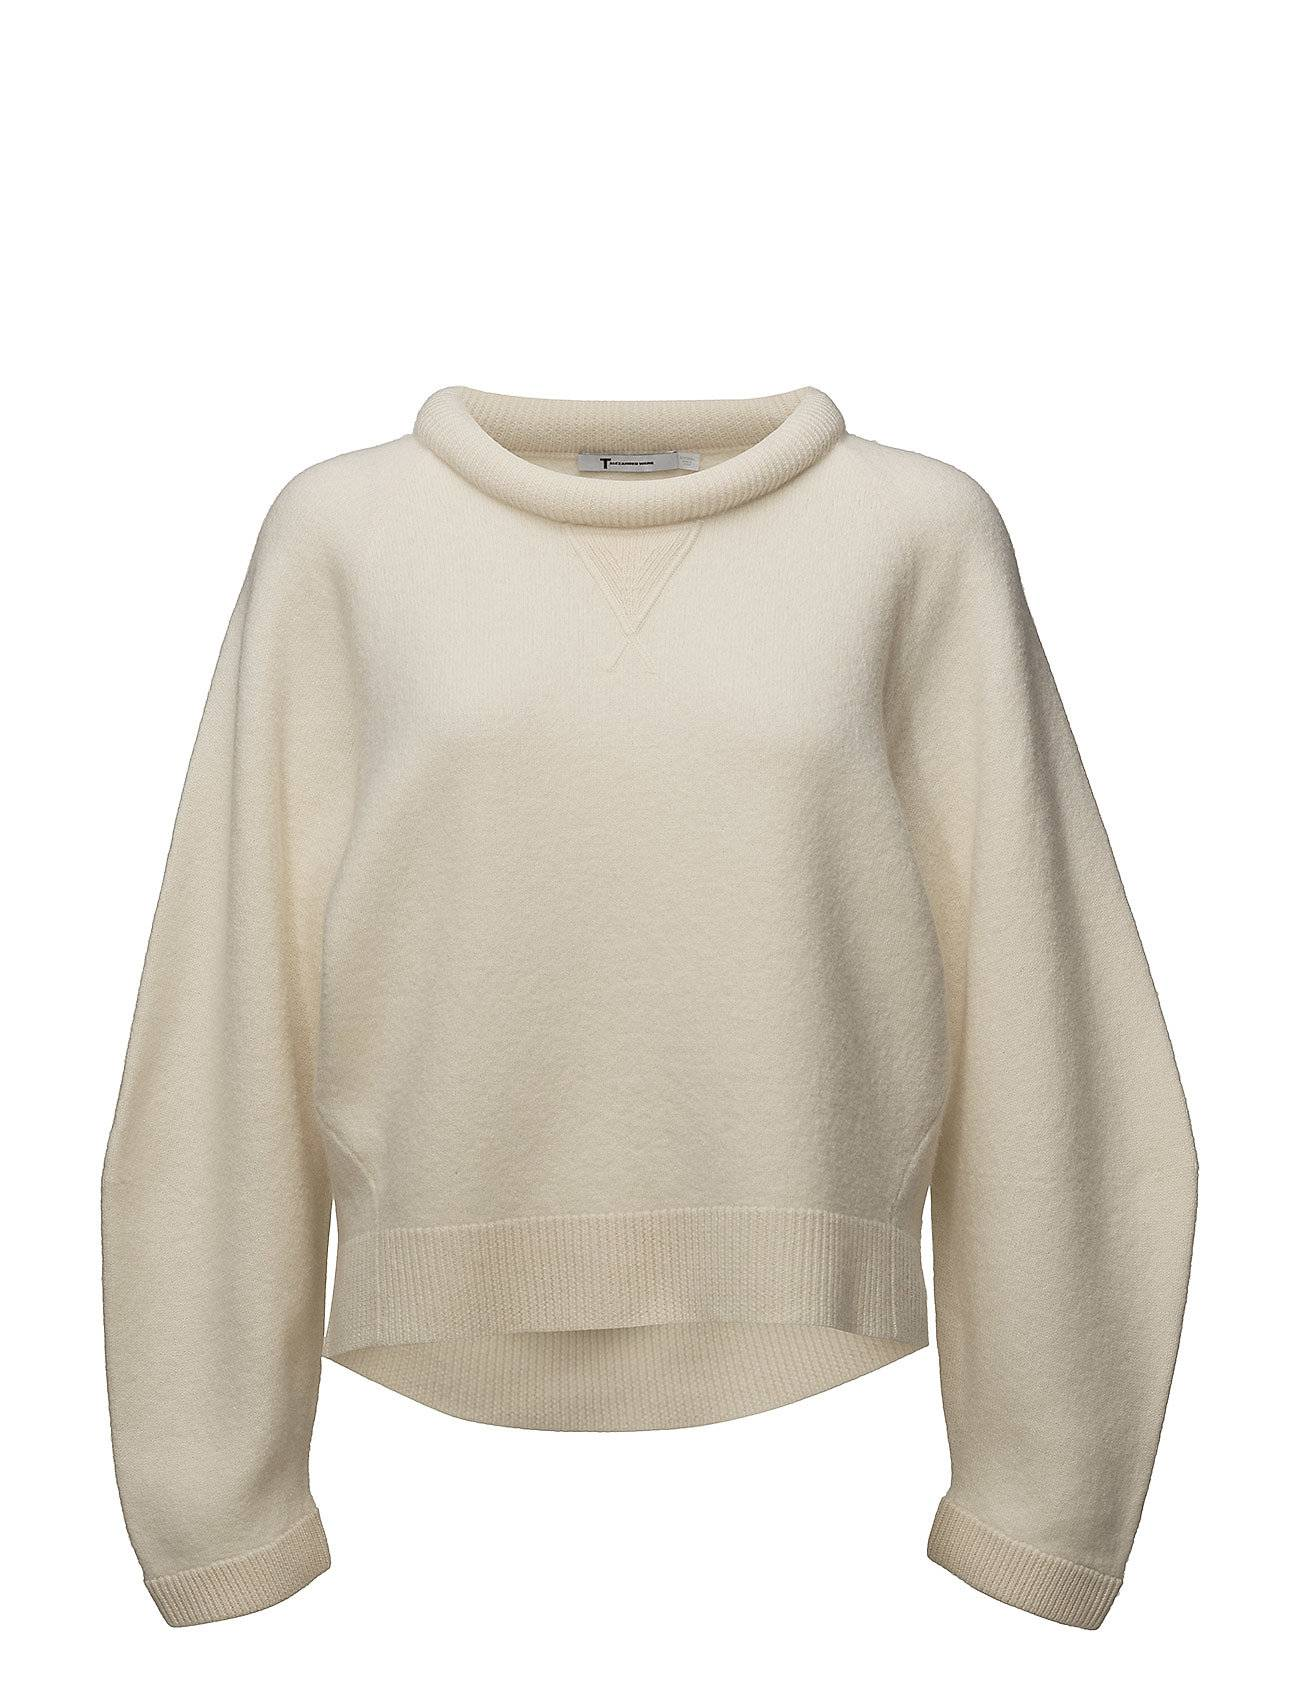 T by Alexander Wang Boiled Wool Crewneck L/Ssweater